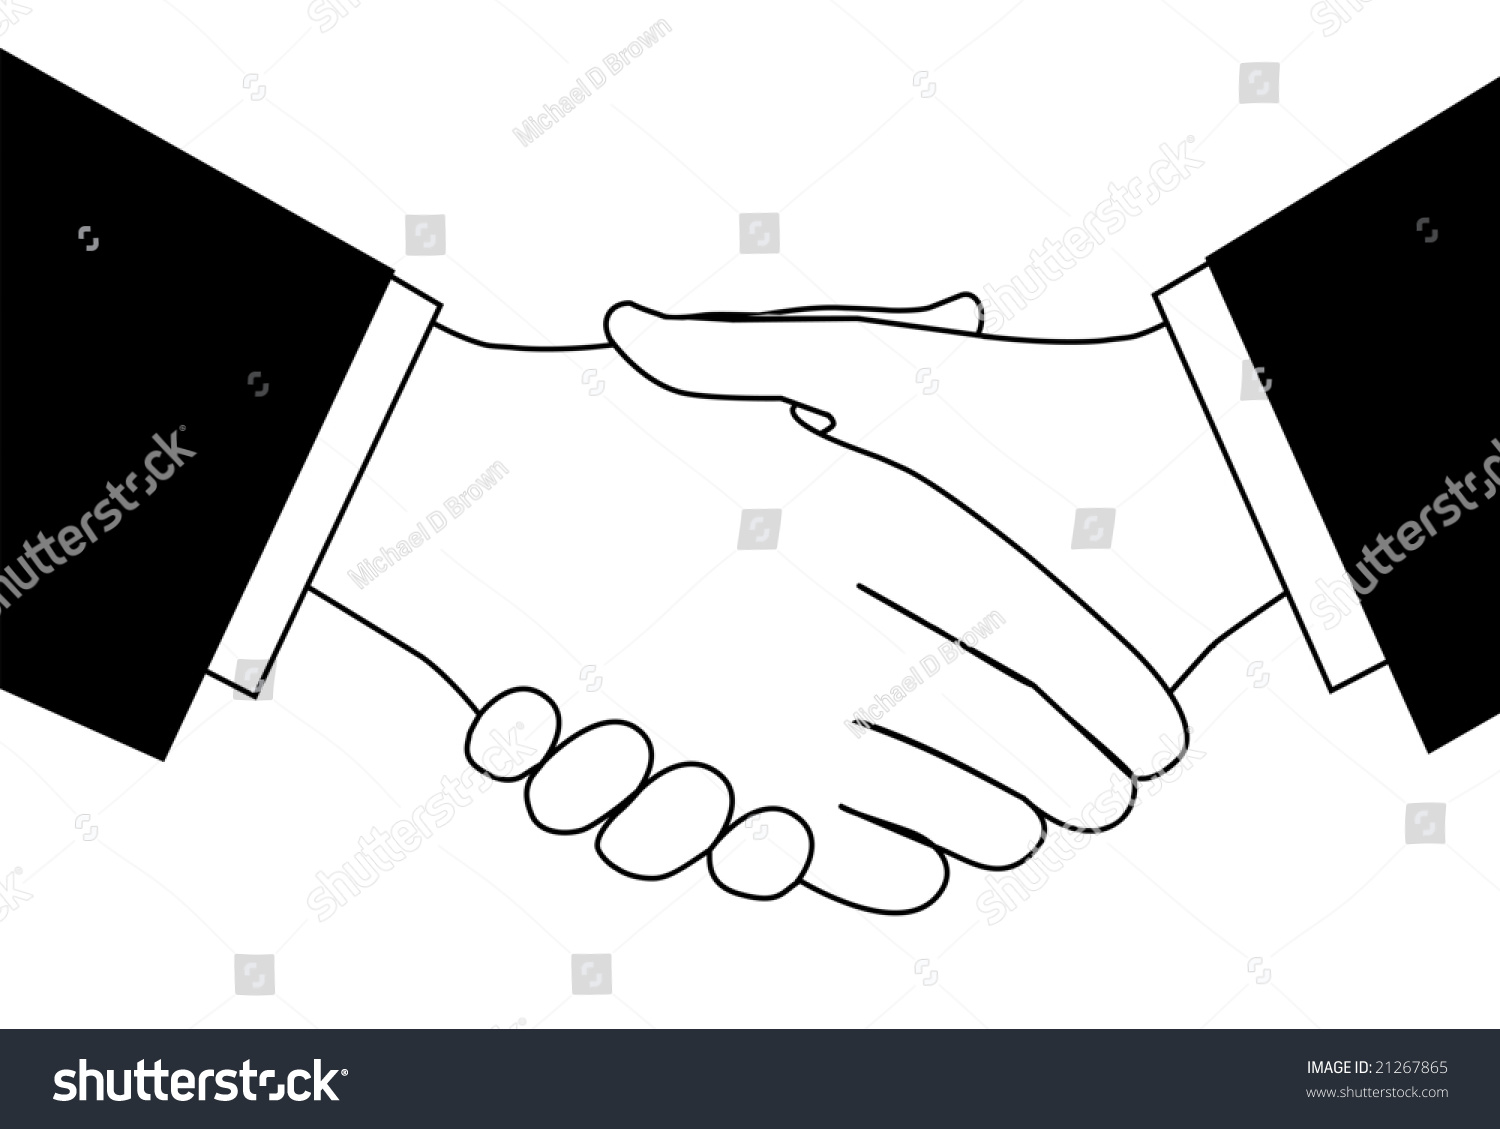 Handshake Clipart Sketch Business People Shaking Stock Vector ...